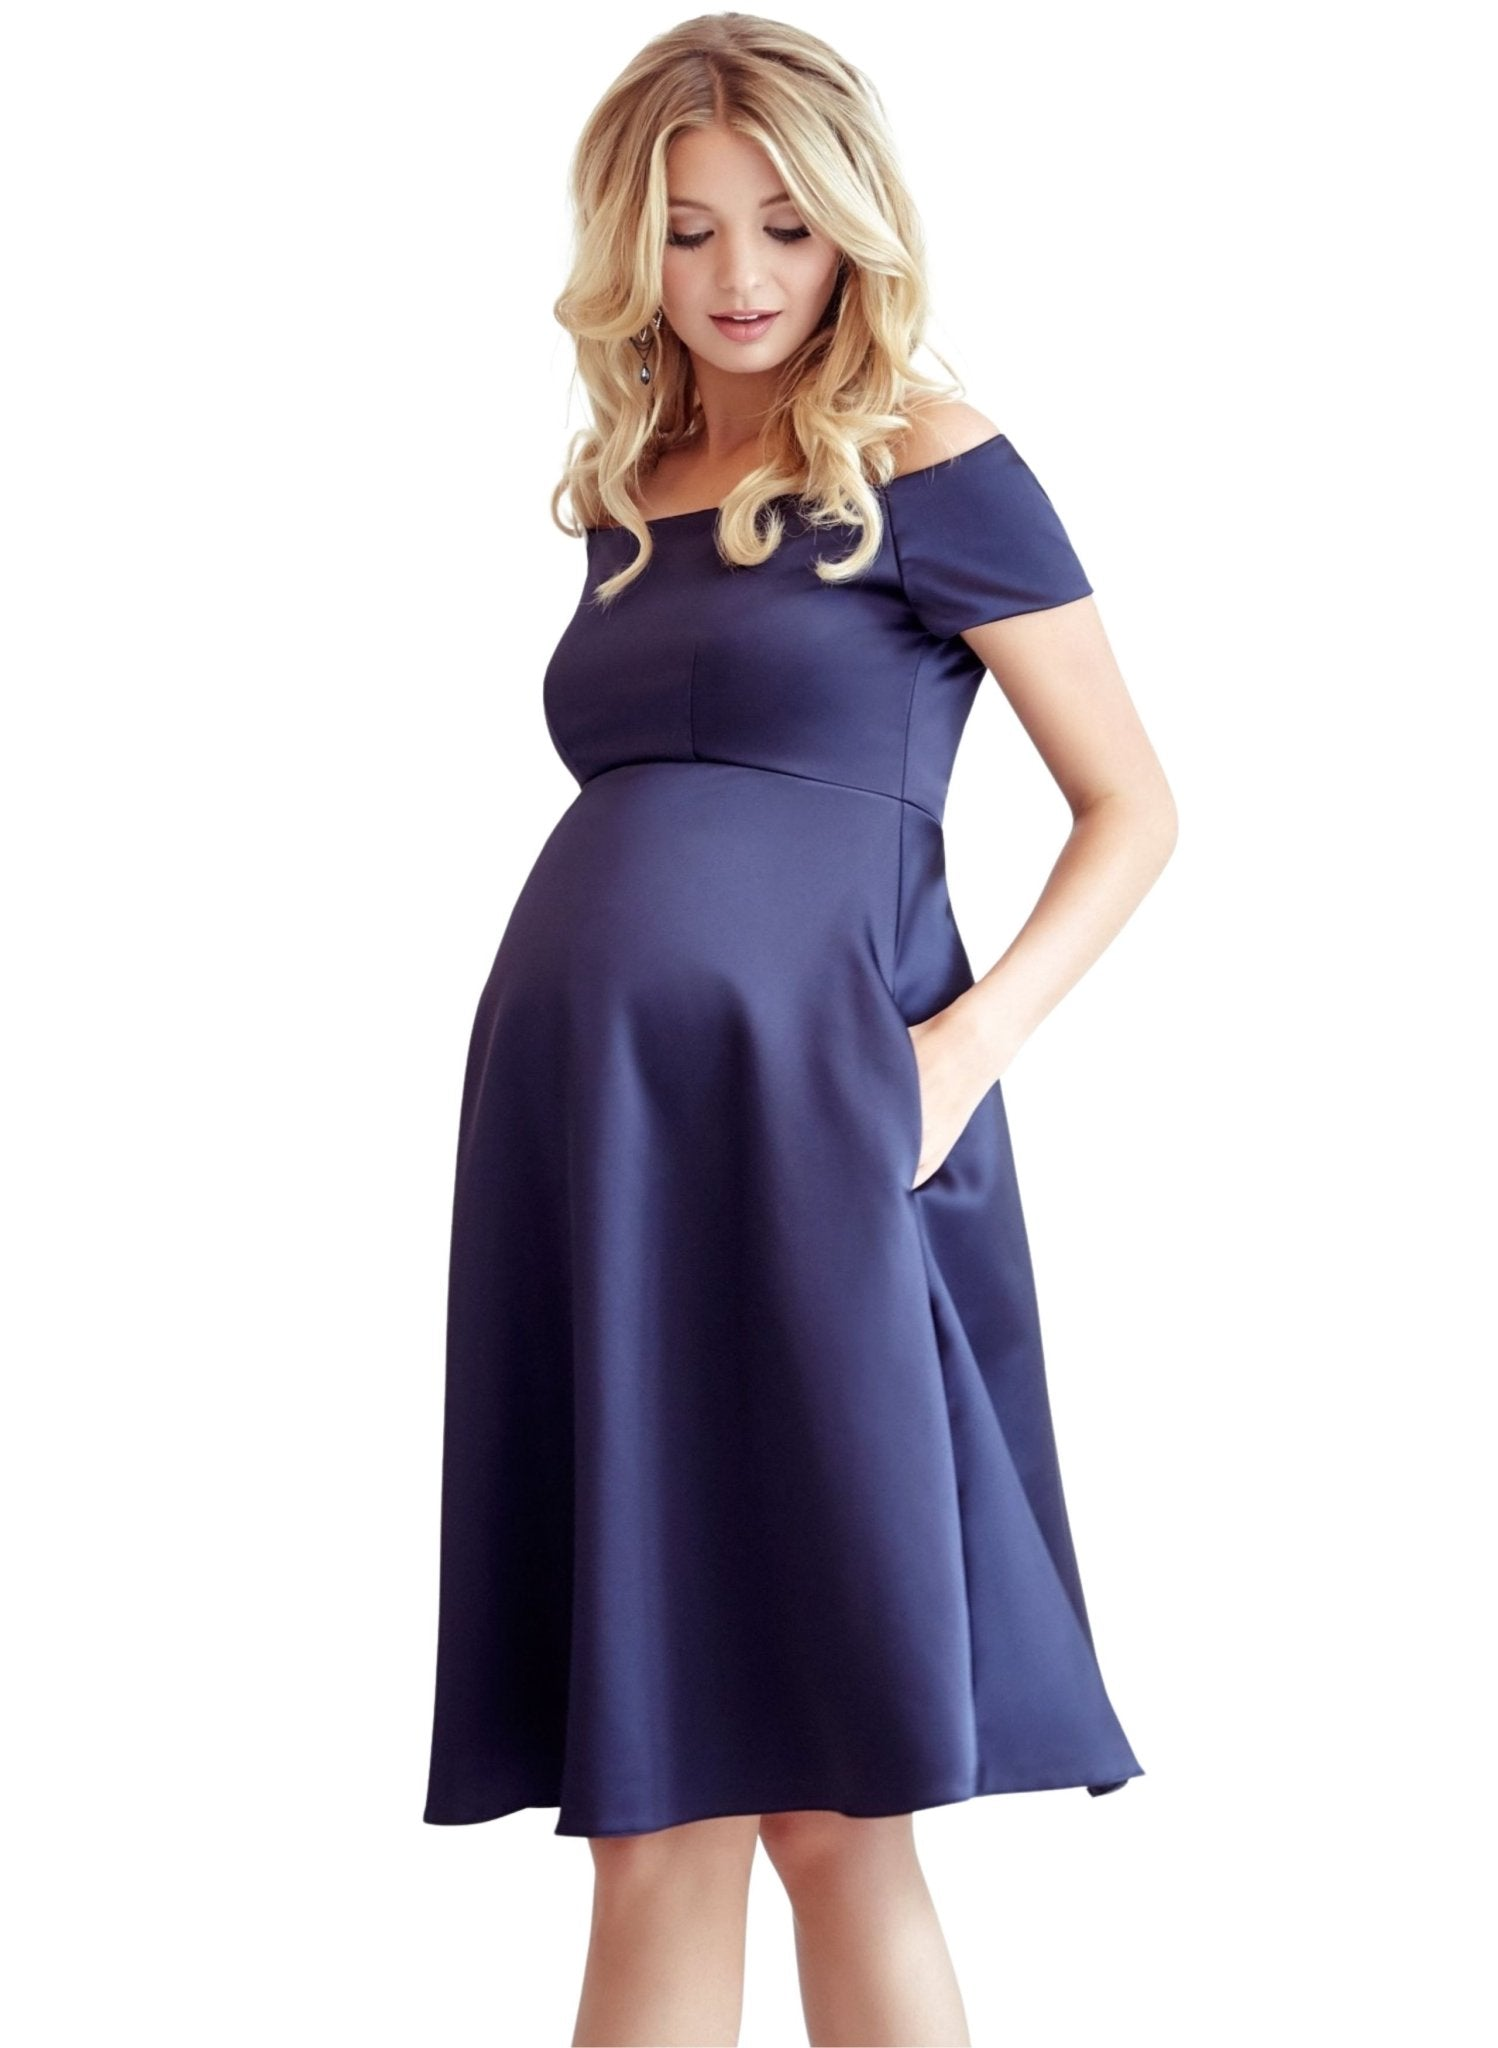 Aria Maternity Dress - Midnight Blue - Mums and Bumps